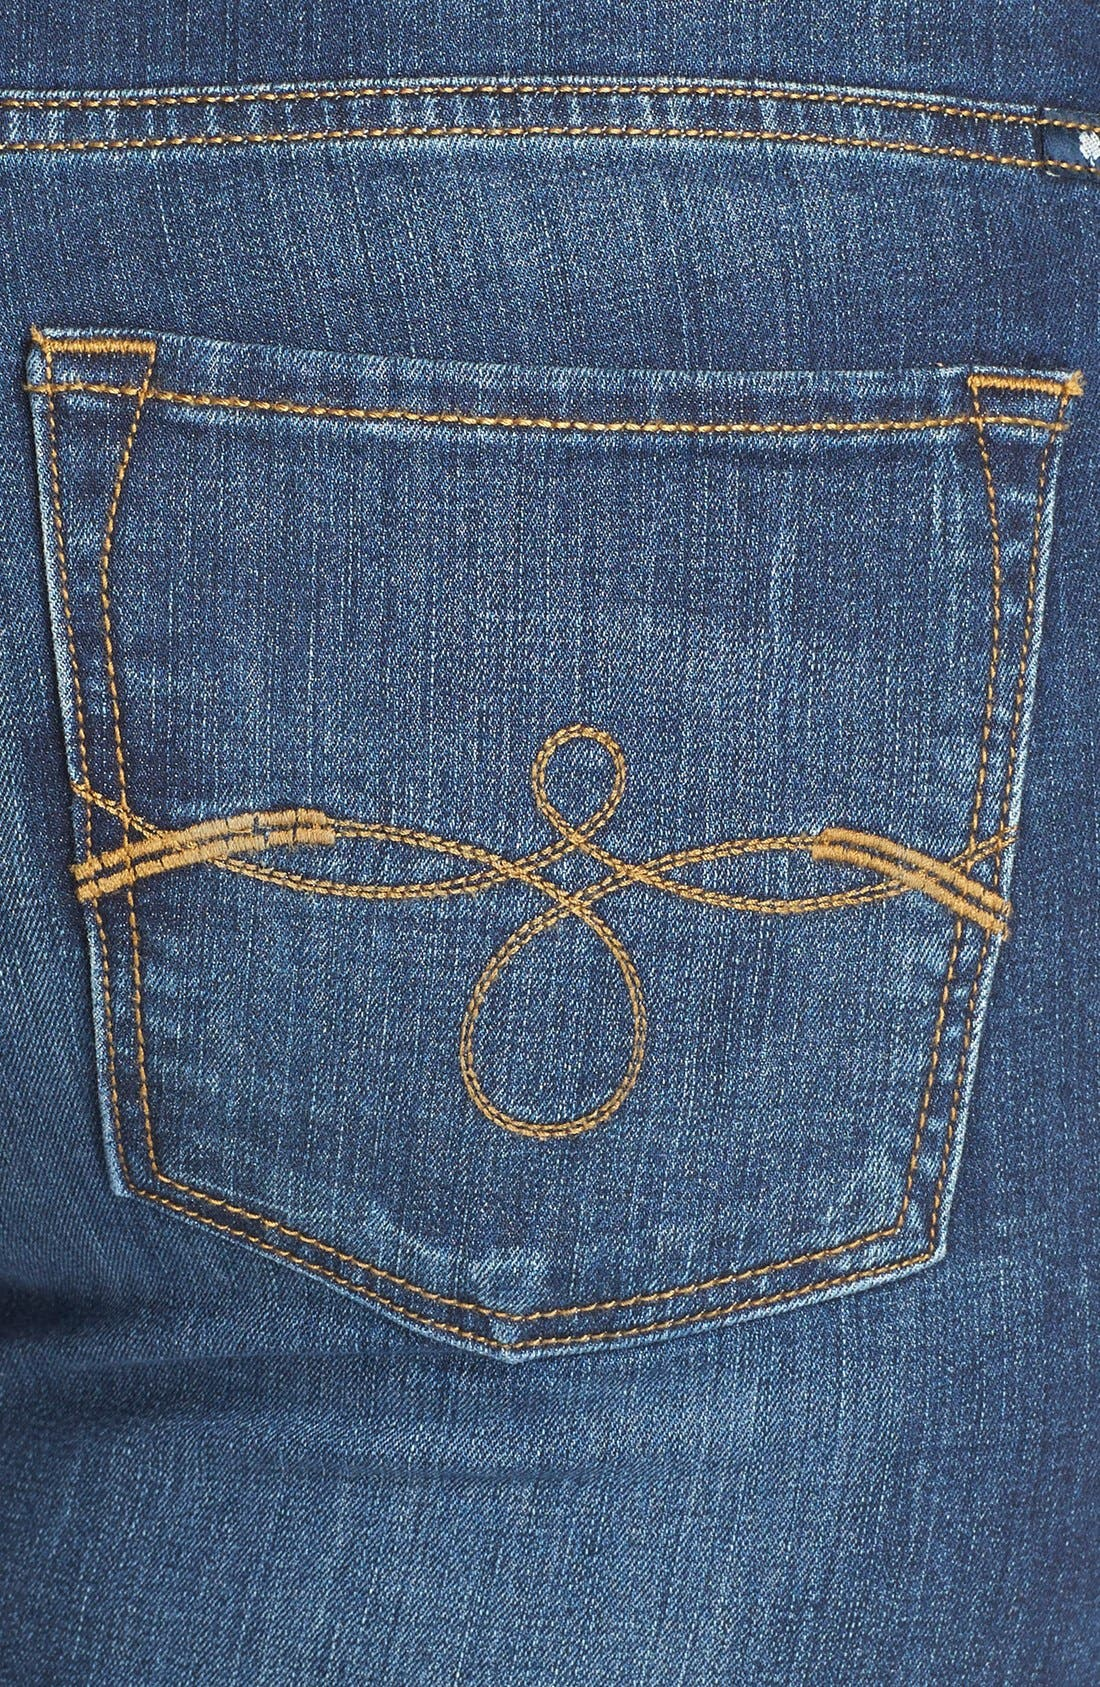 Ginger Bootcut Jeans,                             Alternate thumbnail 5, color,                             420